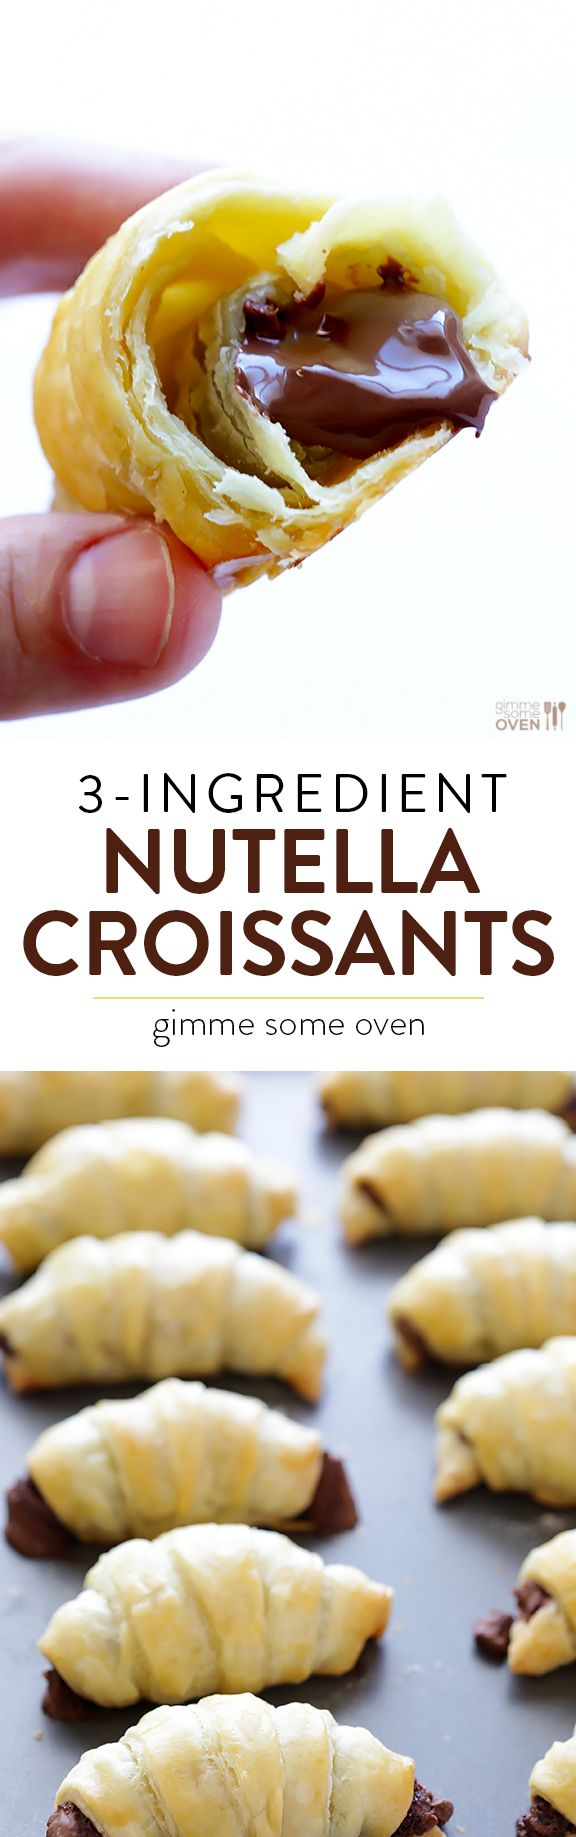 All you need are 3 ingredients to make these easy and delicious treats!